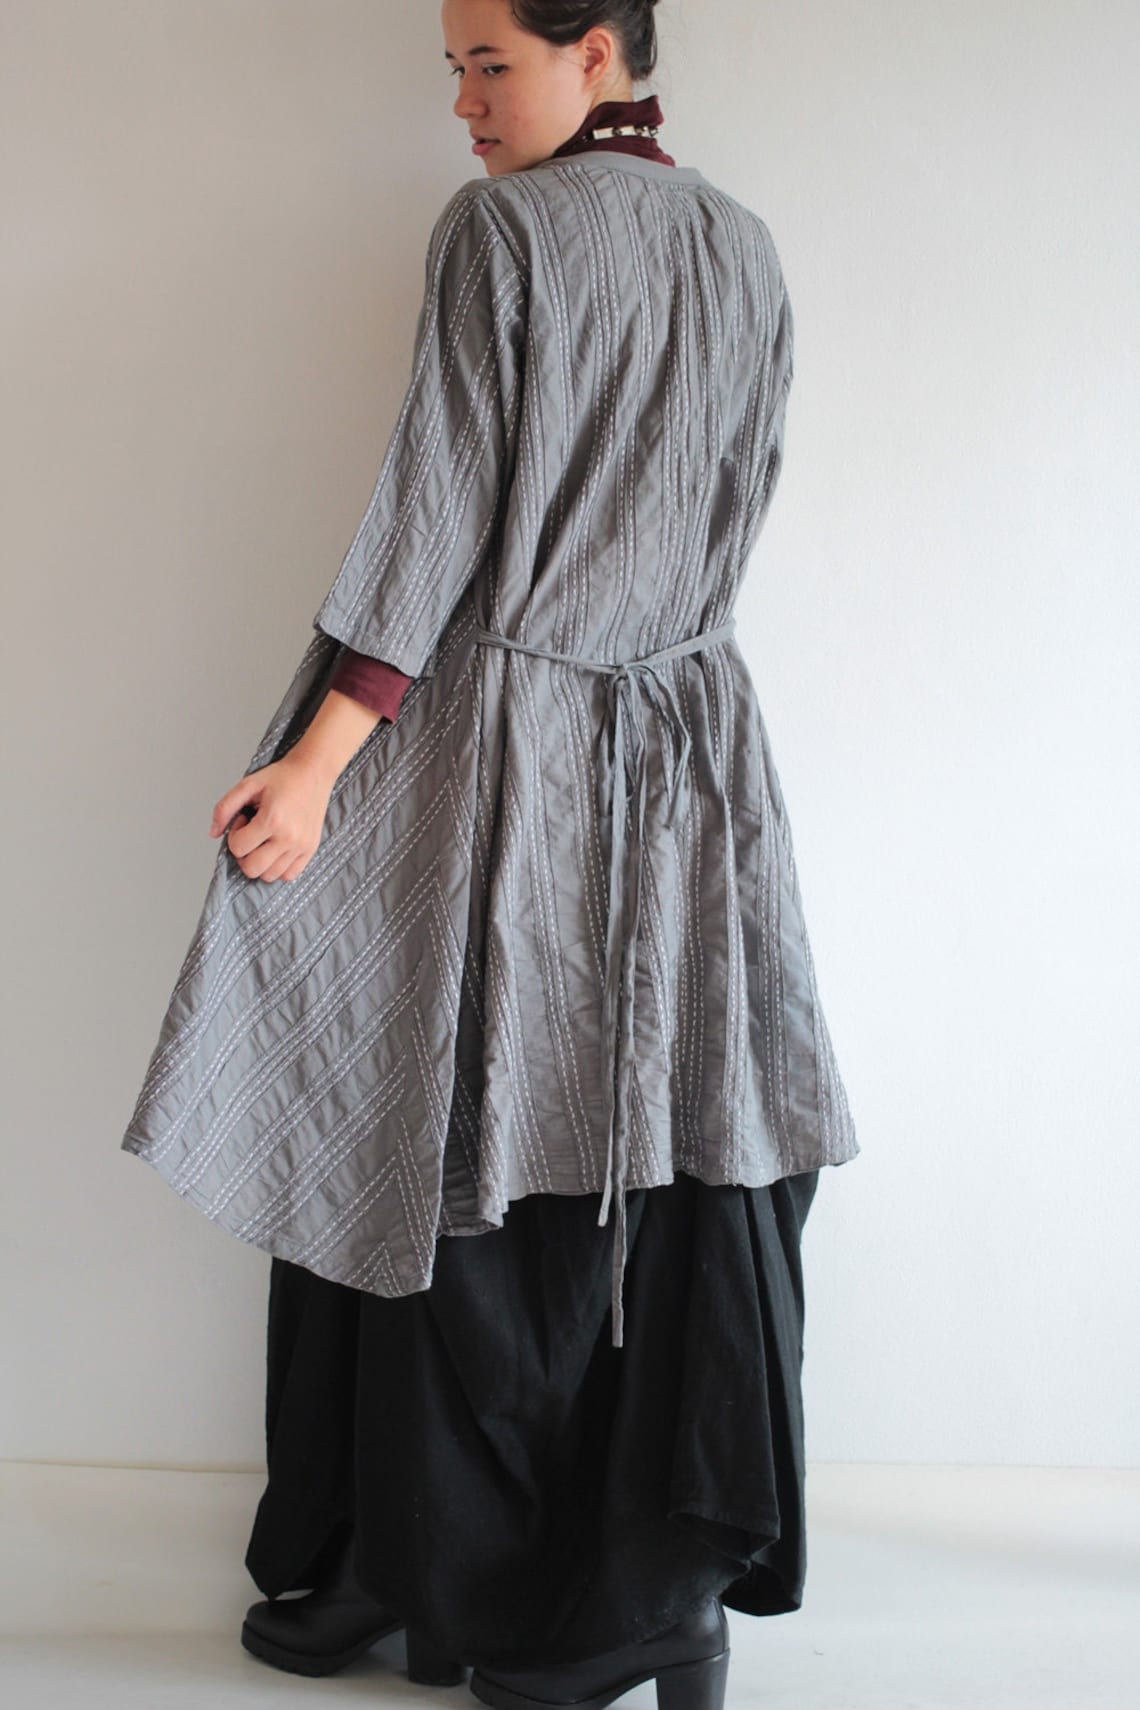 Simple front button jacket/dress 100%cotton with hand